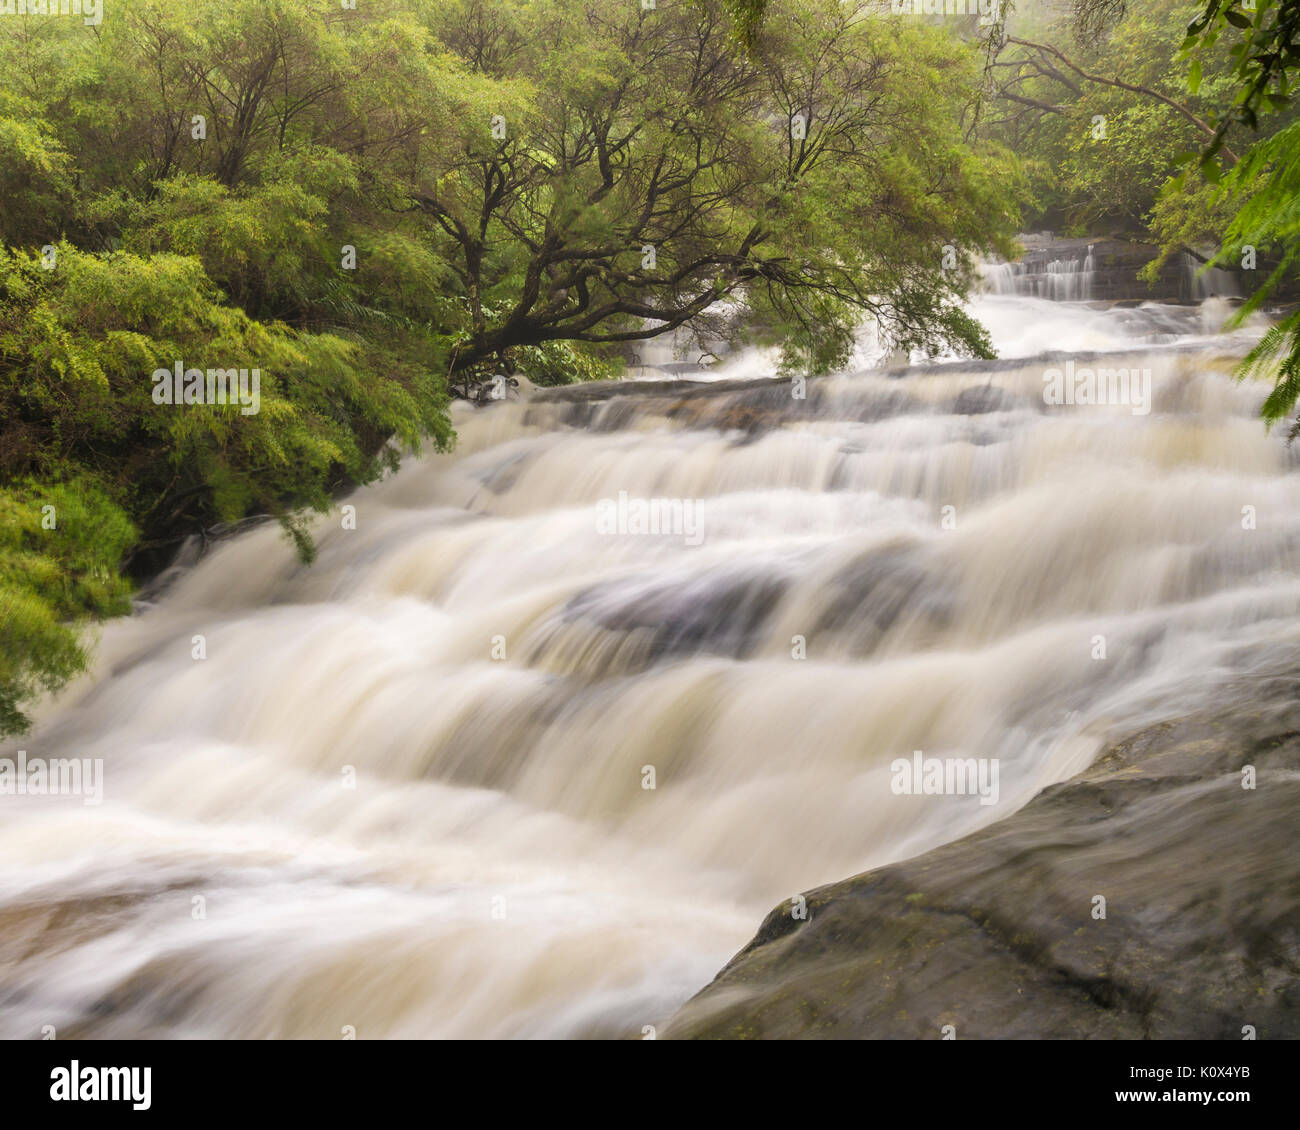 After of heavy rain the water at Leura cascades is running high, Leura, Blue Mountains, NSW, Australia - Stock Image